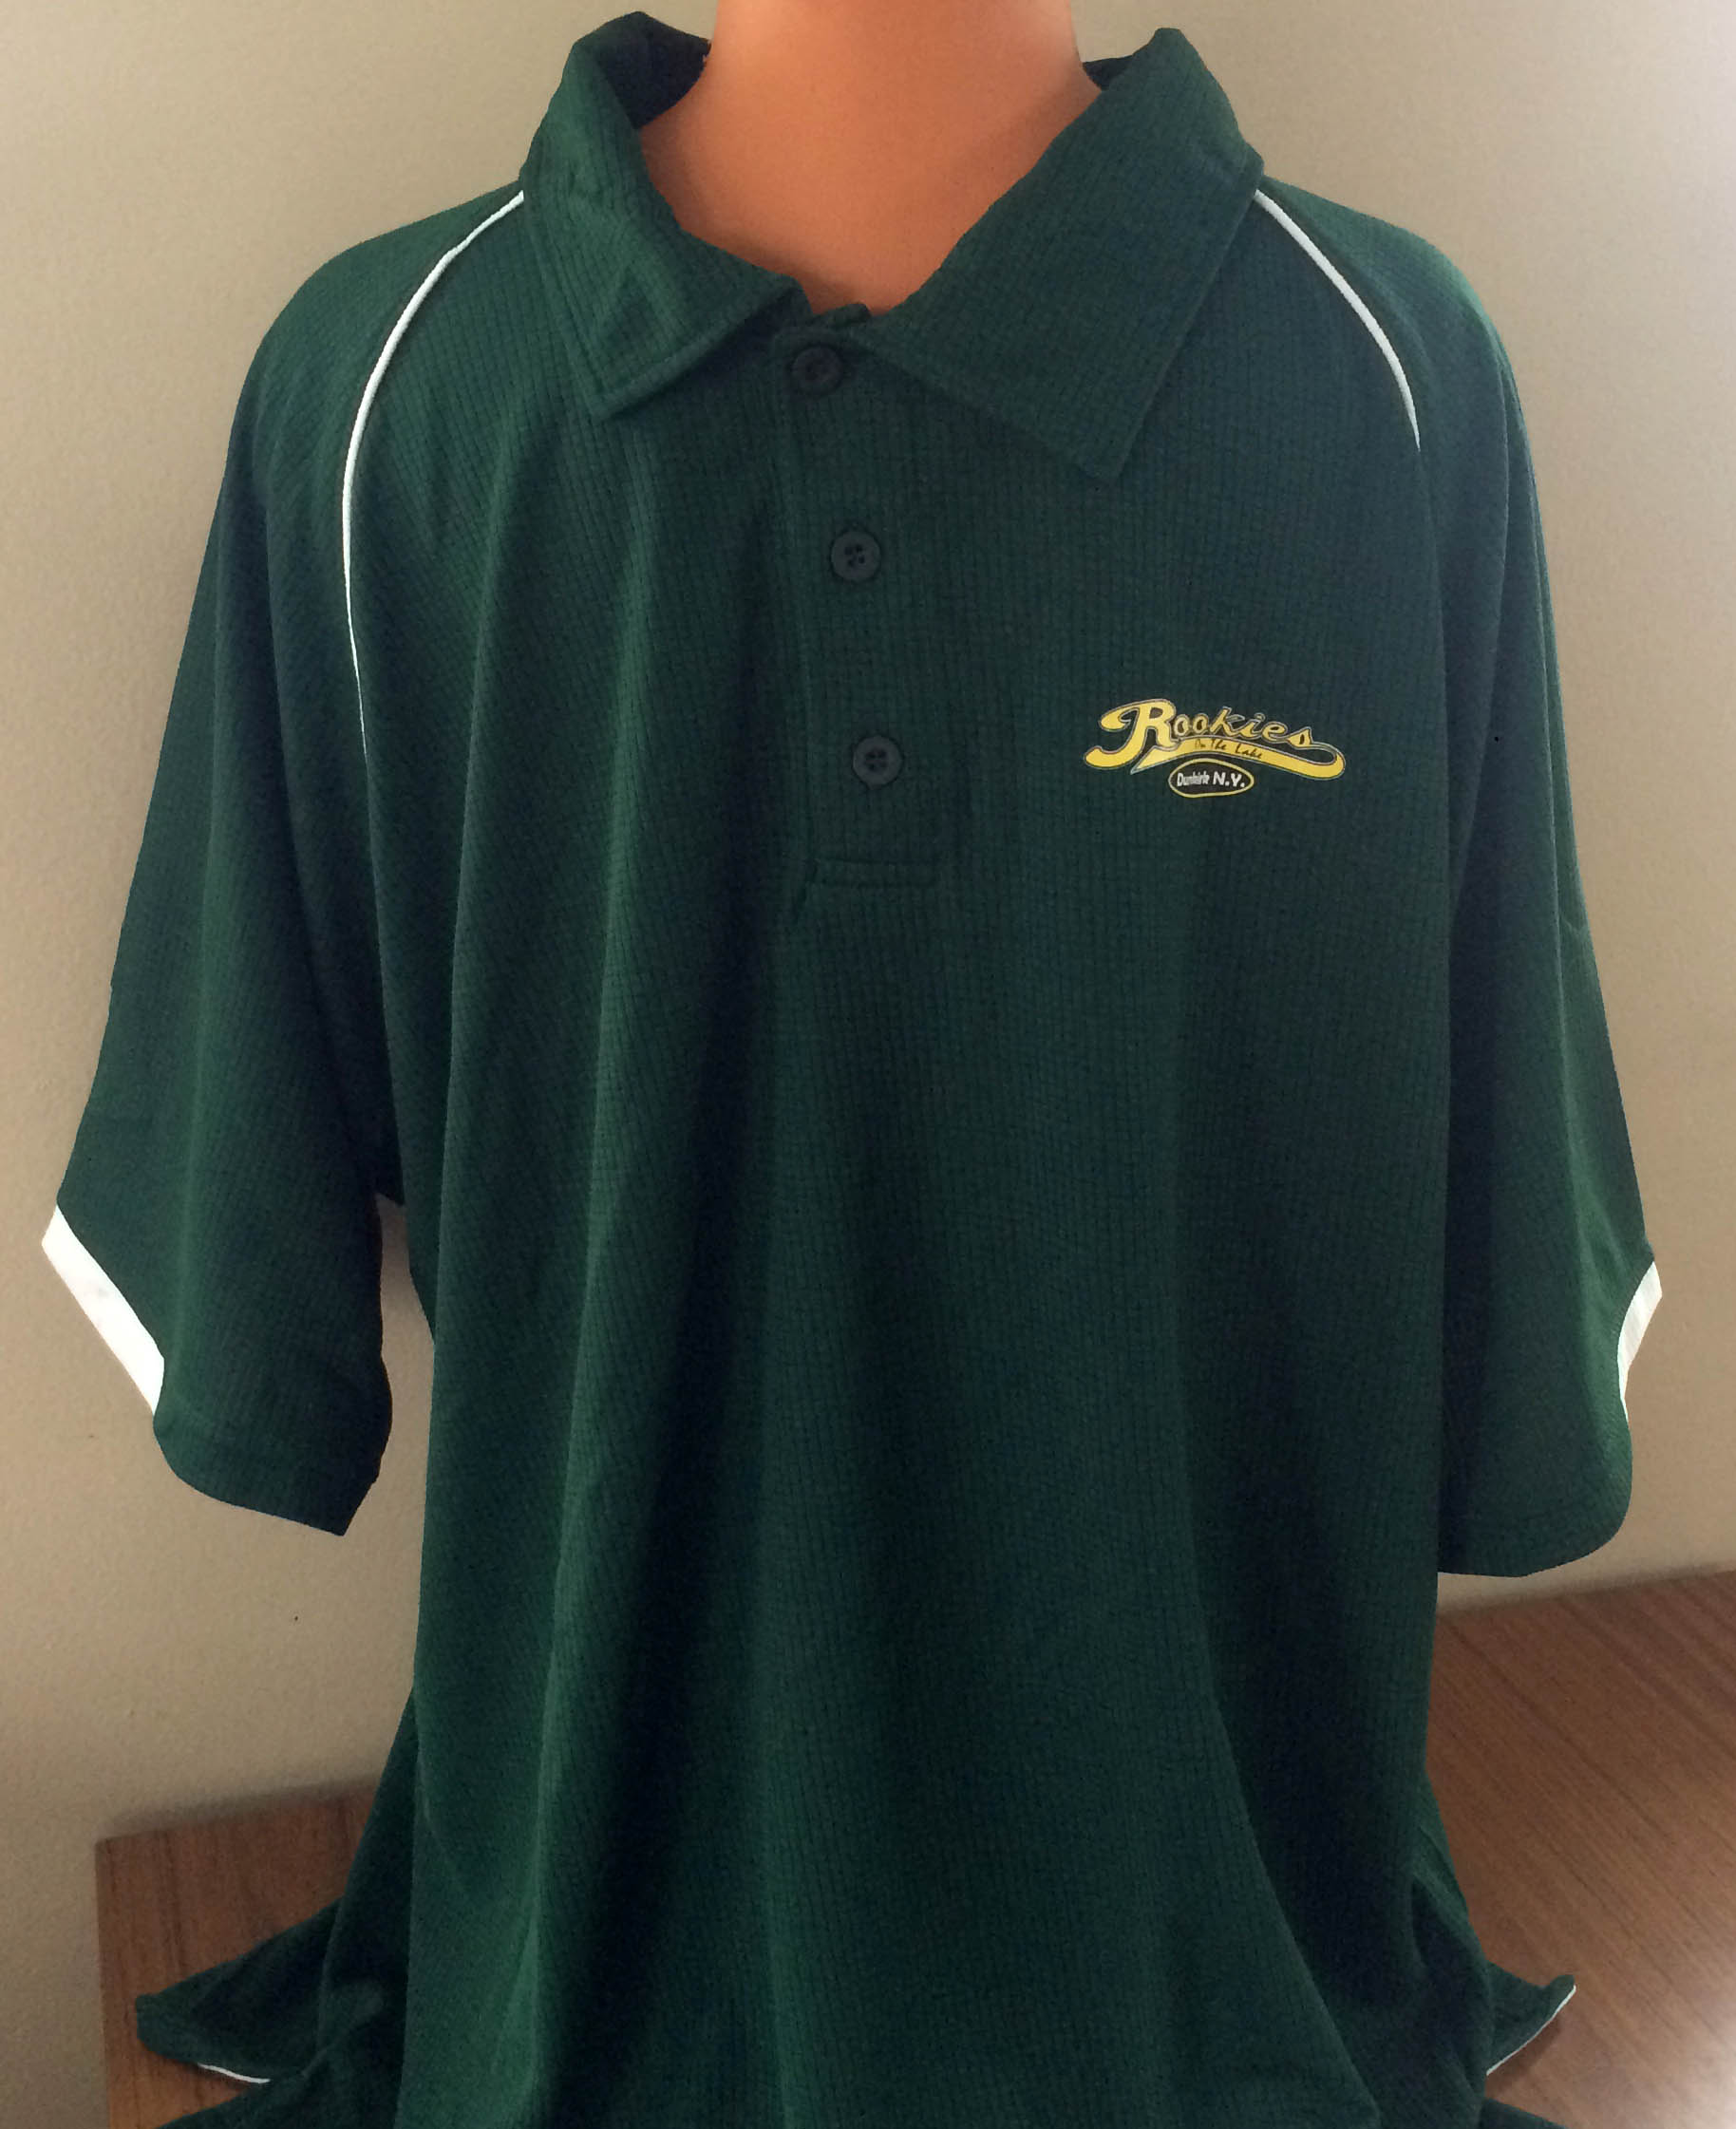 Dri Fit Golf Shirt